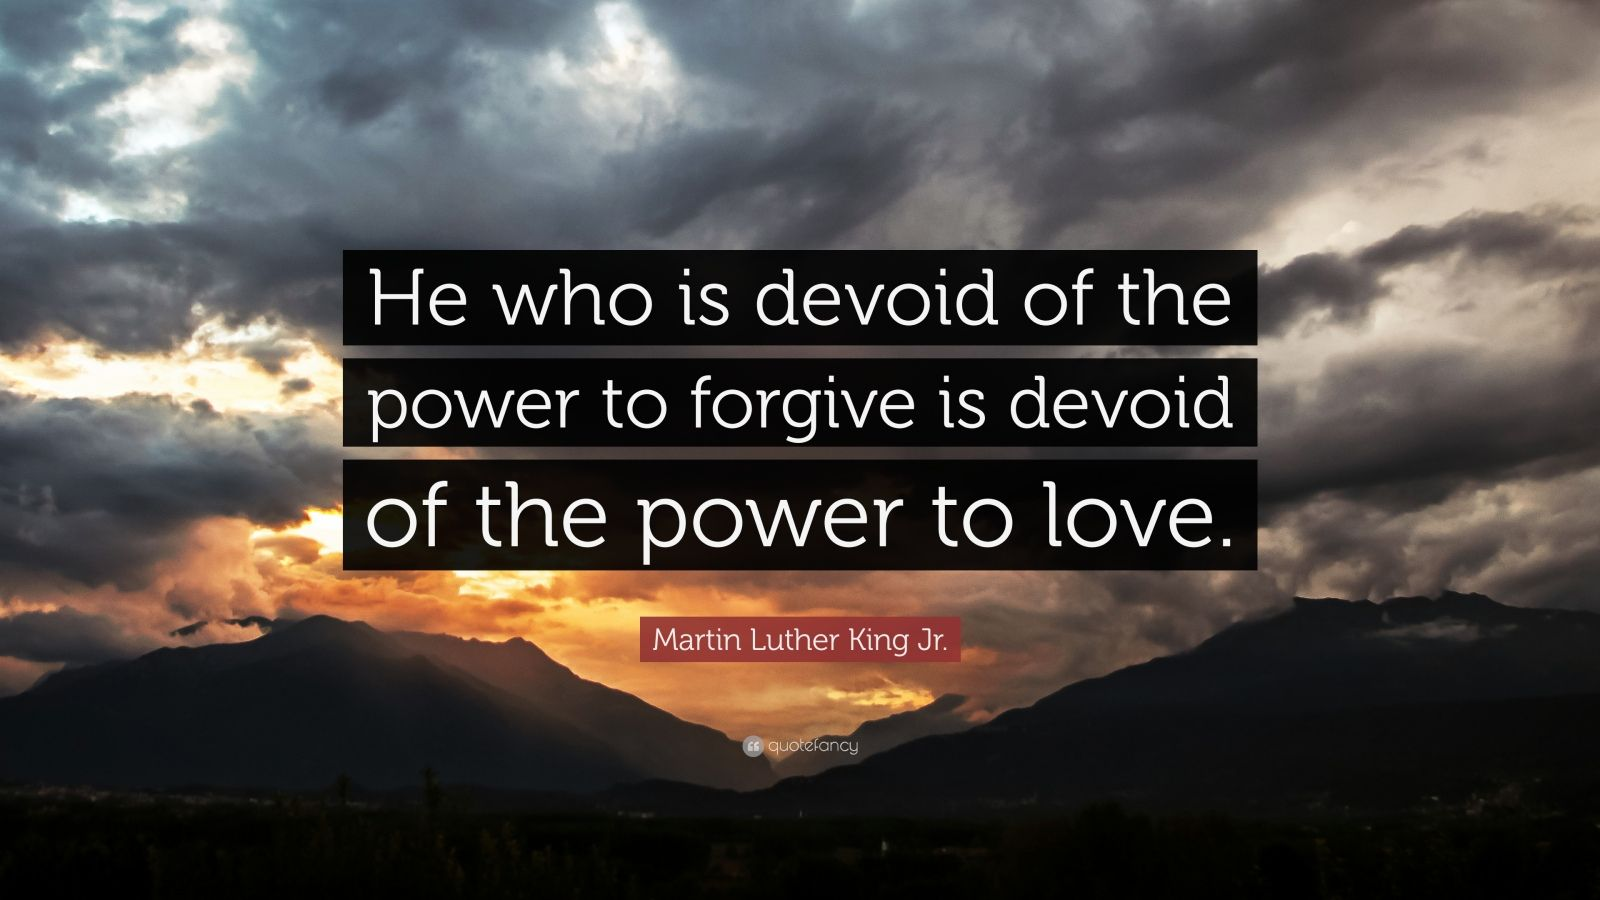 """Martin Luther King Jr. Quote: """"He who is devoid of the power to forgive is devoid of the power to love."""""""